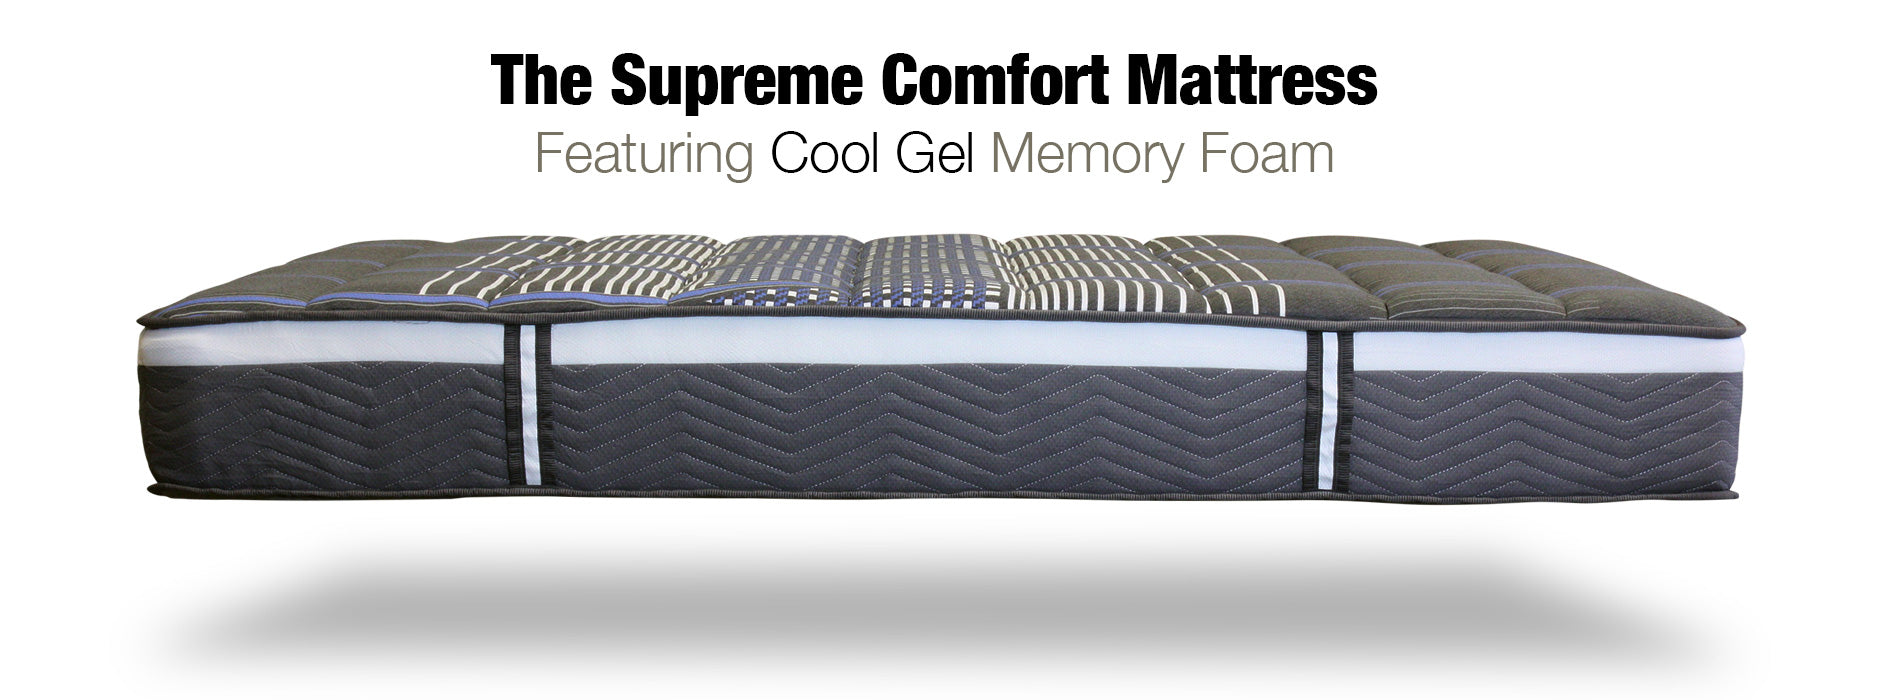 Cool Gel Memory Foam Mattress Brisbane